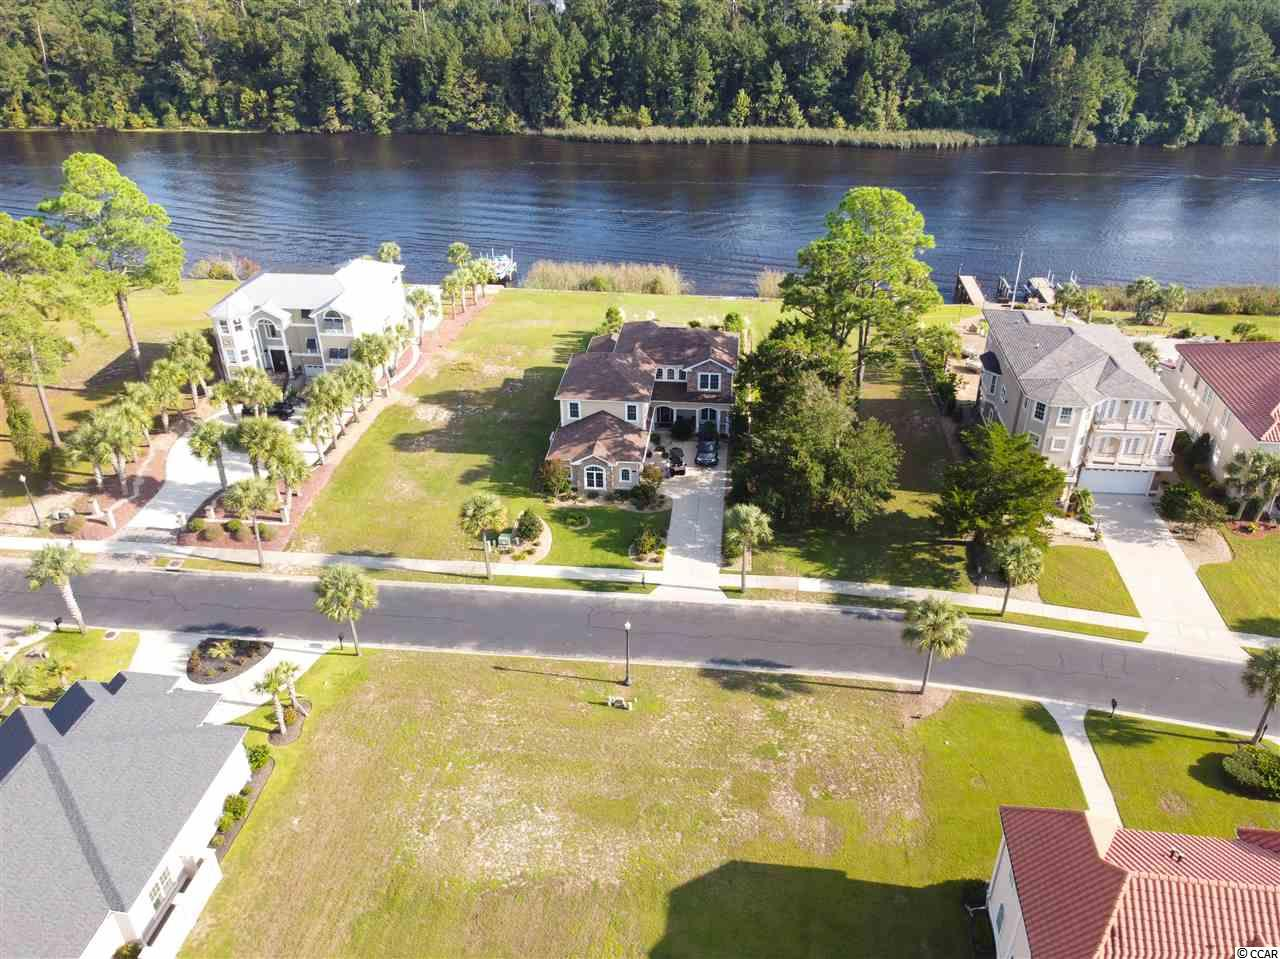 Residential lot 2nd row to the ICW in the GATED community of The Bluffs on the Waterway in Carolina Forest- only 10 mins to the ocean! NO time limit to build. Bring your Builder! Owners enjoy access to the community boat ramp, boat dock, tennis court, playground, 2 beautiful clubhouses, outdoor pools, and gated storage area- perfect for storing your boat or RV. The neighborhood also has a lake that is great for fishing, kayaking, and enjoying nature. There is also a trail that is perfect for biking, walking or golf carting over the ICW straight to the ocean. The HOA allows pets and the ability to install fences & pools with prior approval. Motorcycles, boats, golf carts, and commercial vehicles are welcome! Carolina Forest is just a short drive to everything Myrtle Beach has to offer including Coastal Grande Mall, Tanger Outlets, marinas, public docks, landings, restaurants, golf courses, shops, entertainment, Myrtle Beach International Airport, Broadway At The Beach, The Market Common, Barefoot Resort and Coastal Carolina University(CCU). Also, only 90 miles to beautiful Charleston, SC.